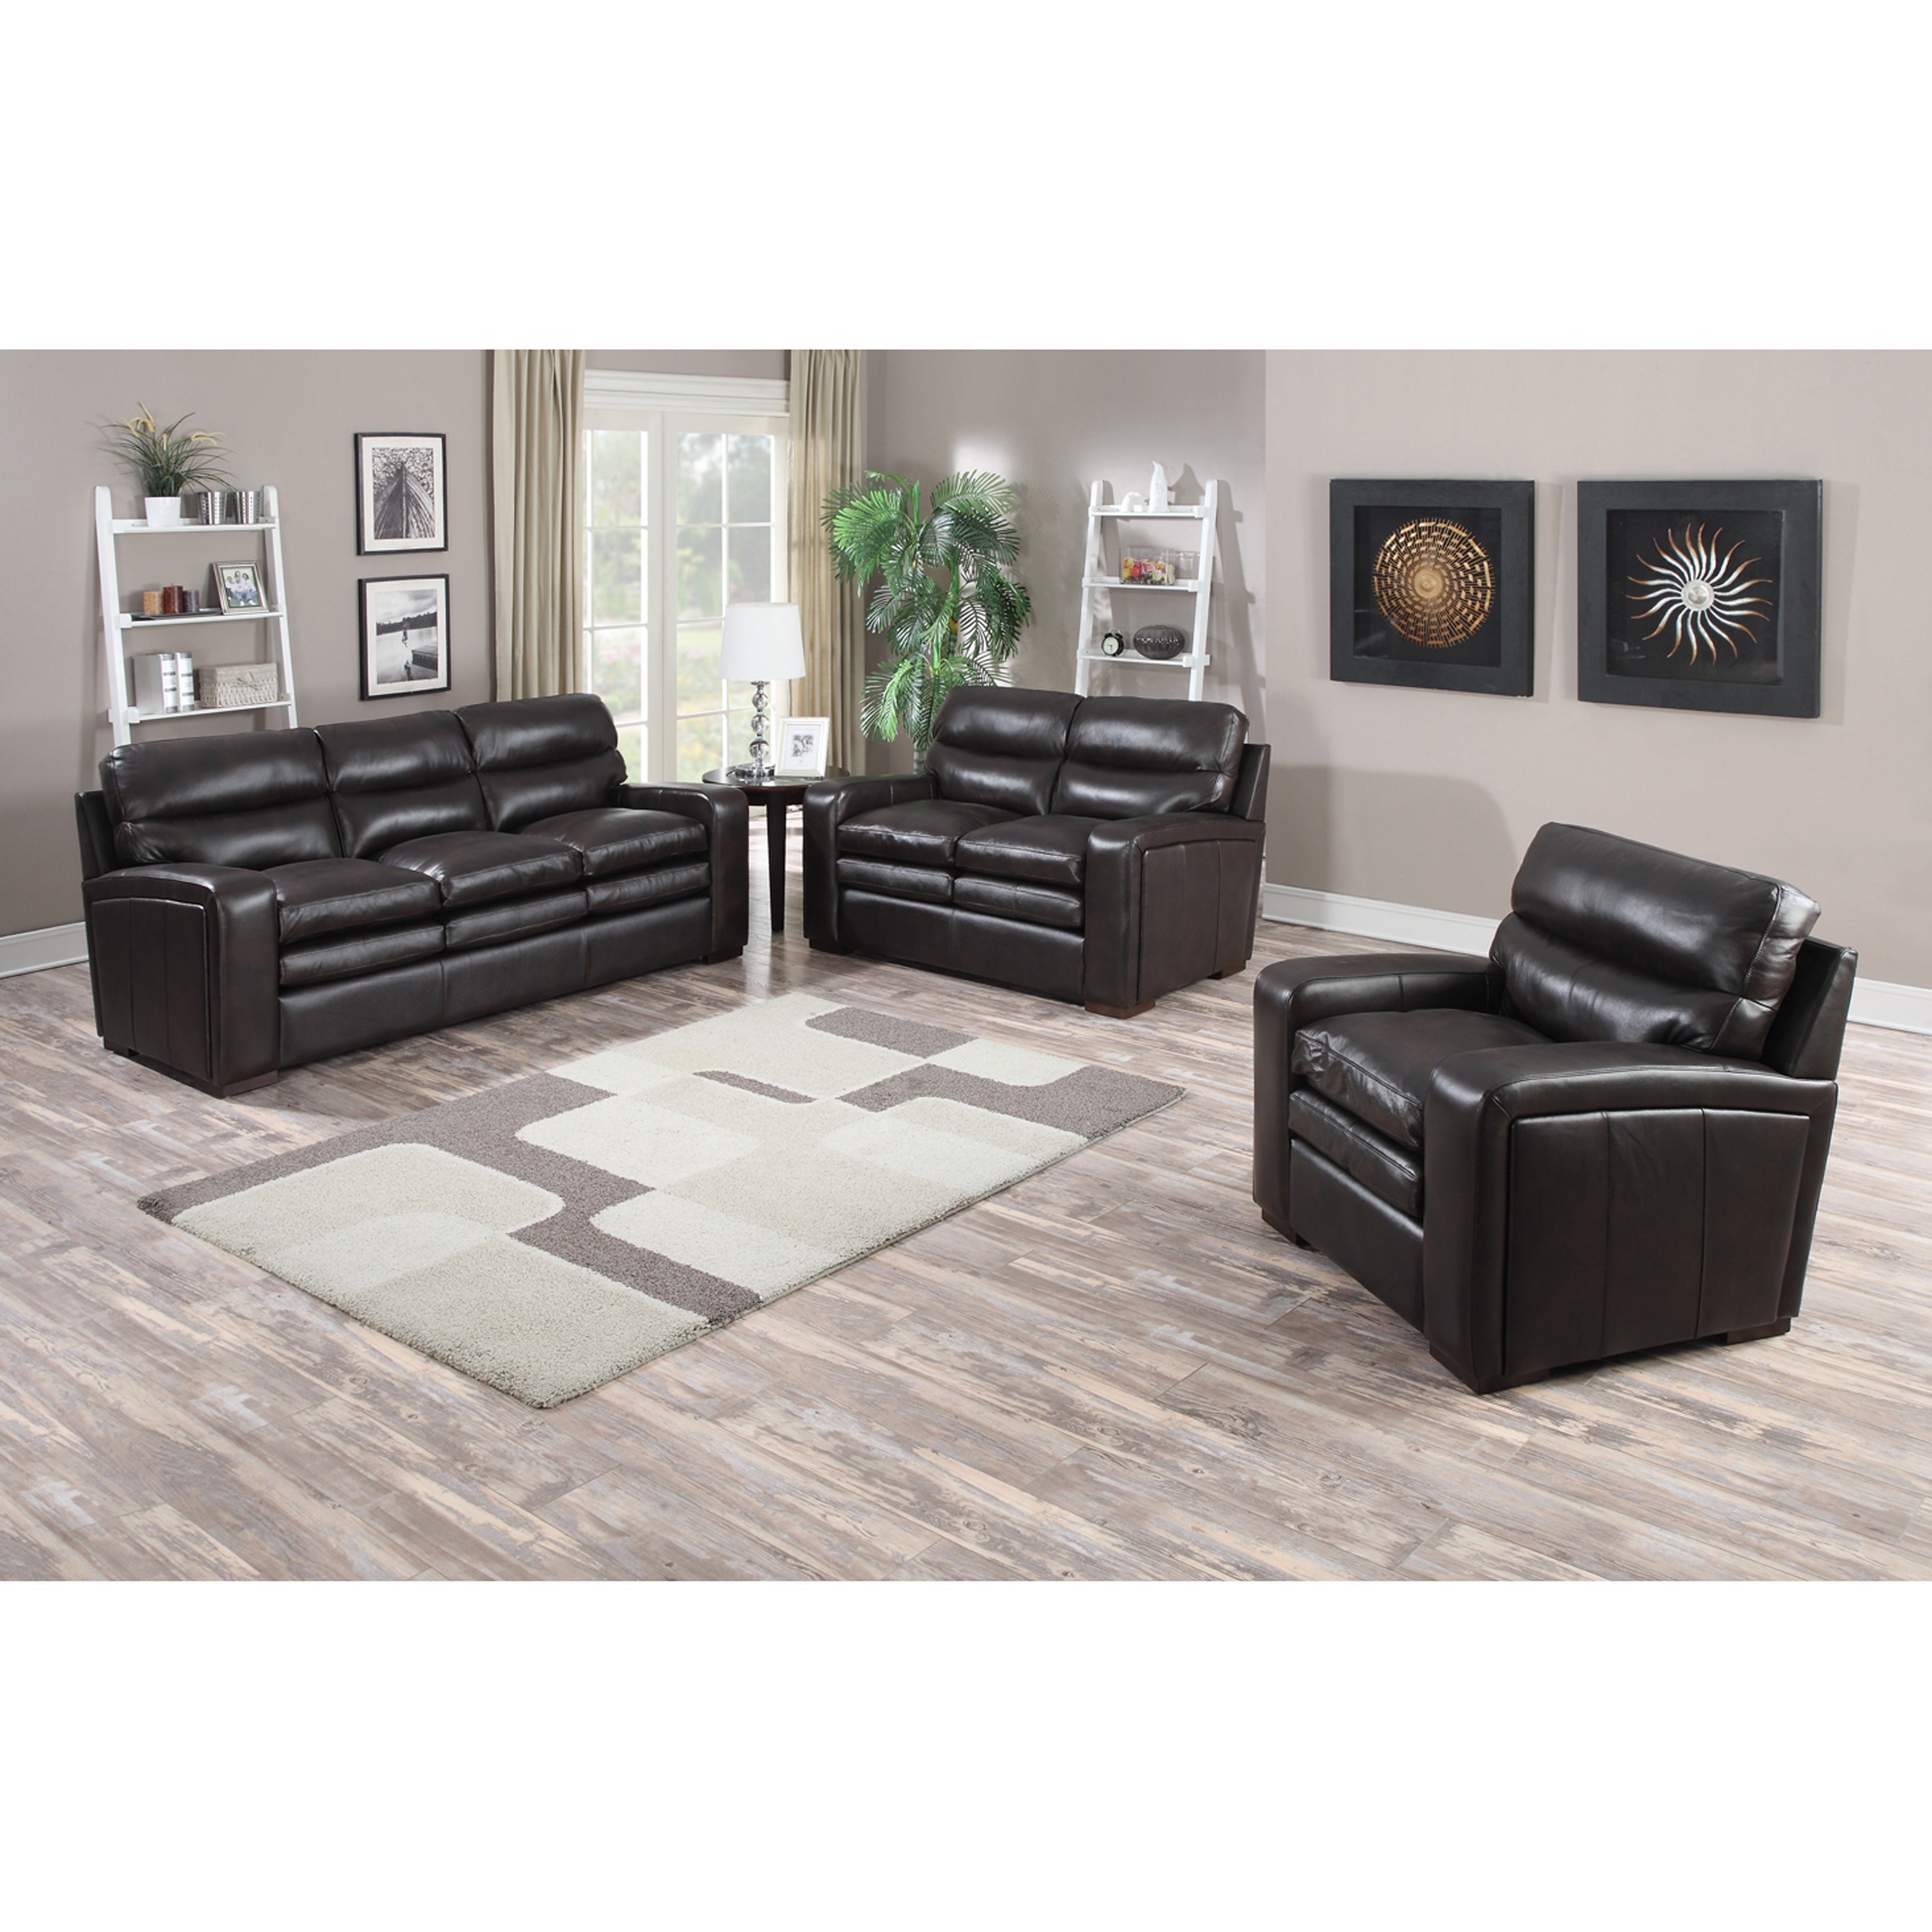 Shop Mercer Dark Brown Italian Leather Sofa, Loveseat And Chair Pertaining To Mercer Foam Oversized Sofa Chairs (Image 17 of 25)